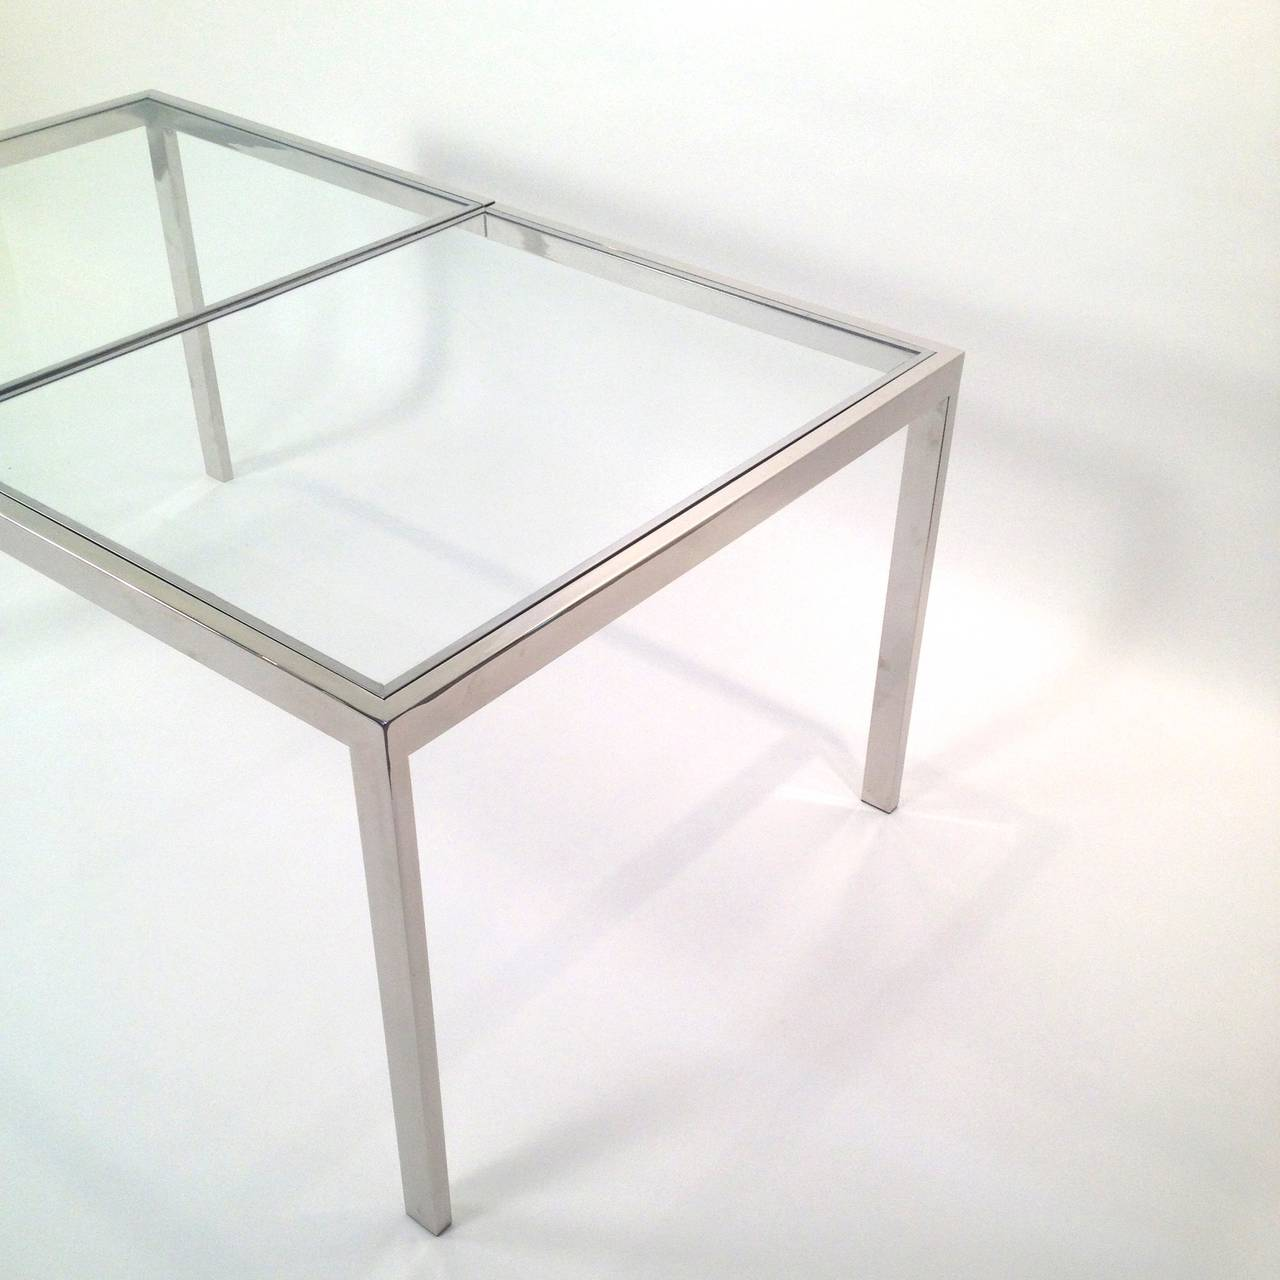 Milo baughman chrome and glass dining table at 1stdibs for Glass dining table